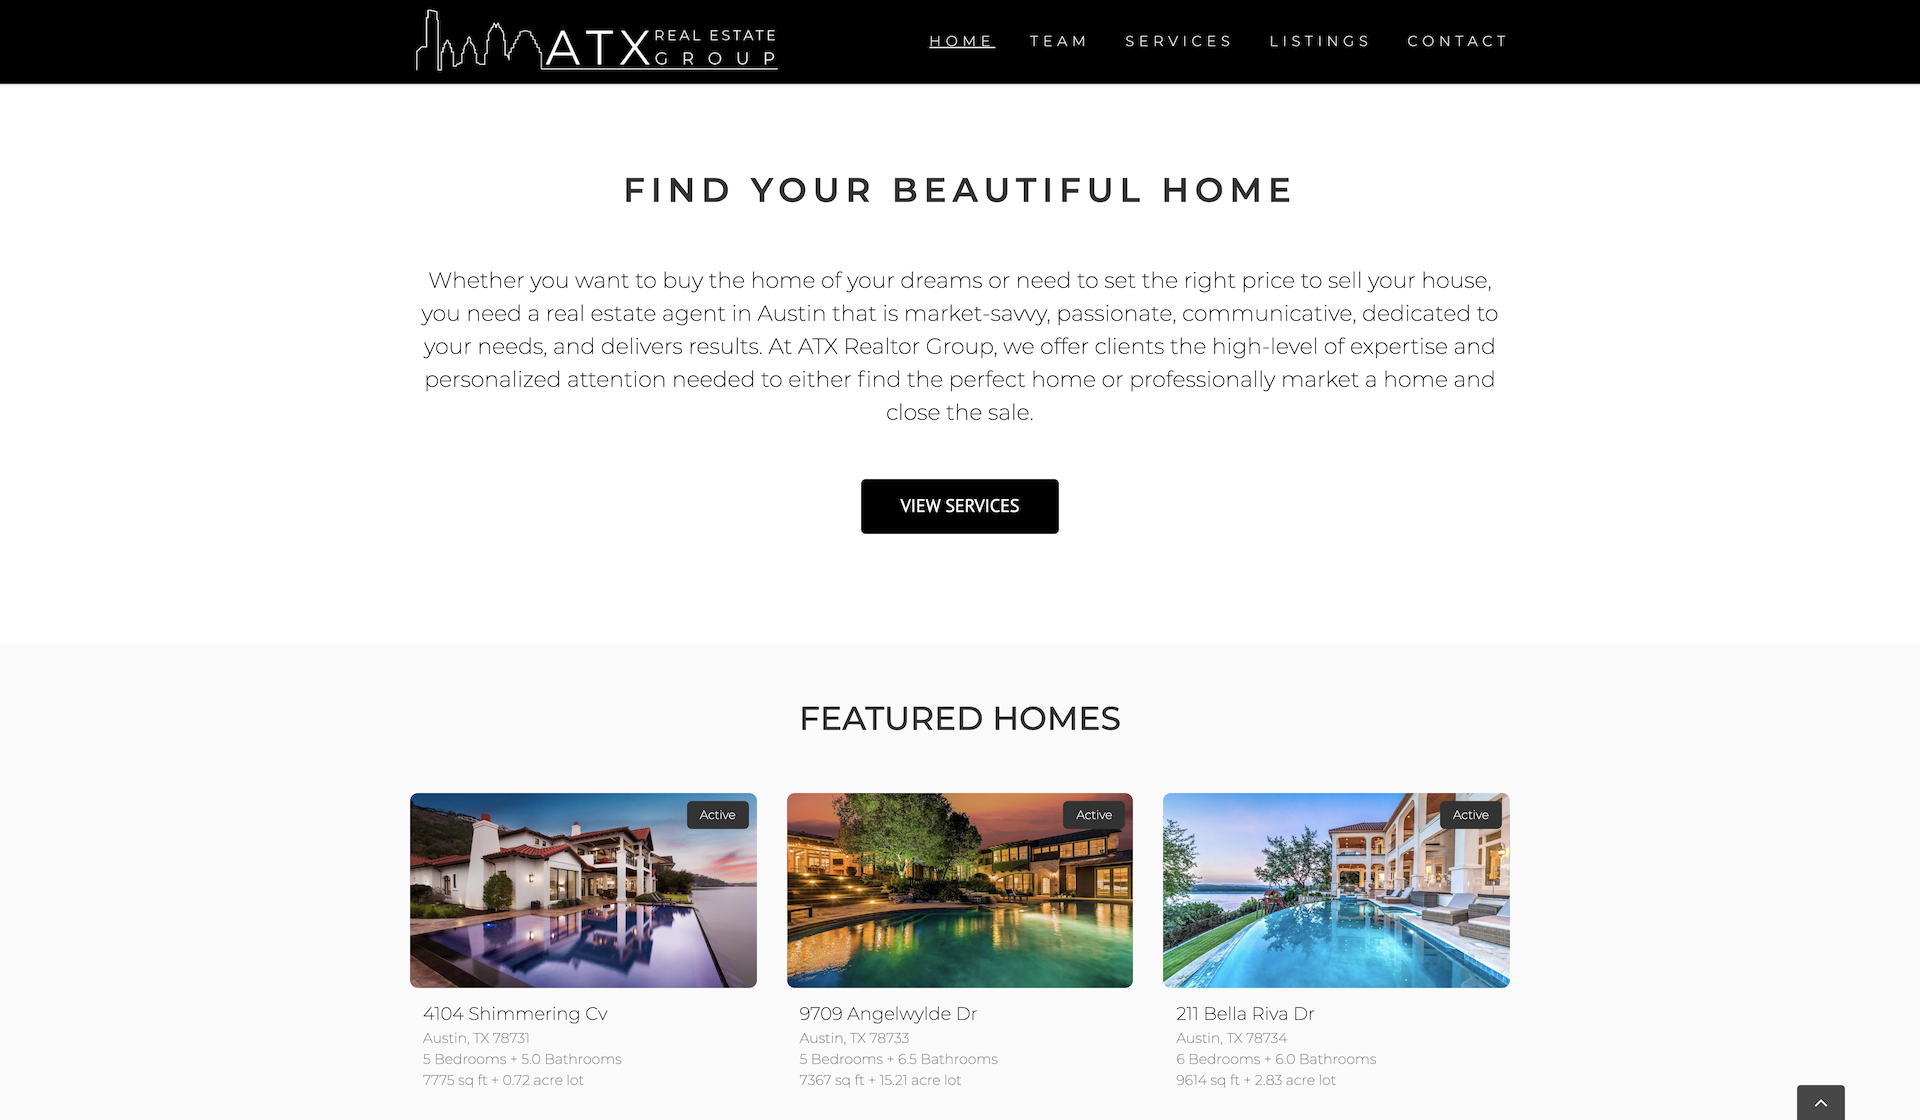 ATX Real Estate Group Website Example